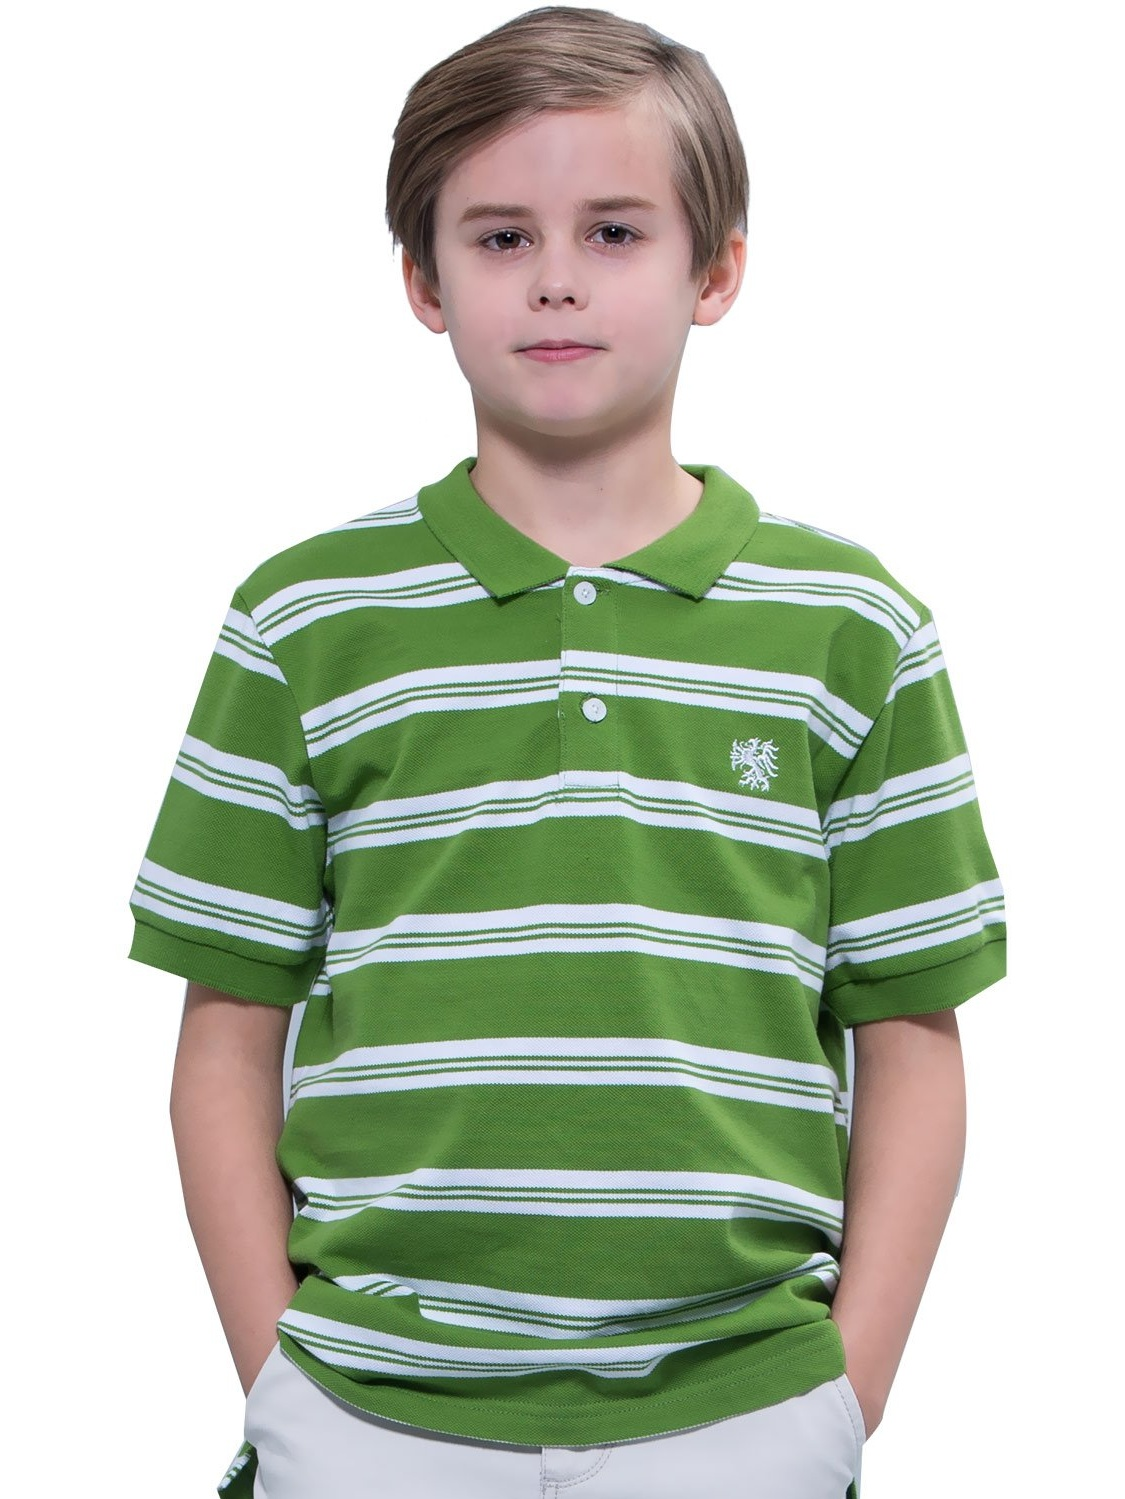 Leo&Lily Big Boys' Kids' Cotton Pique Stripe Polo Shirts T-Shirts